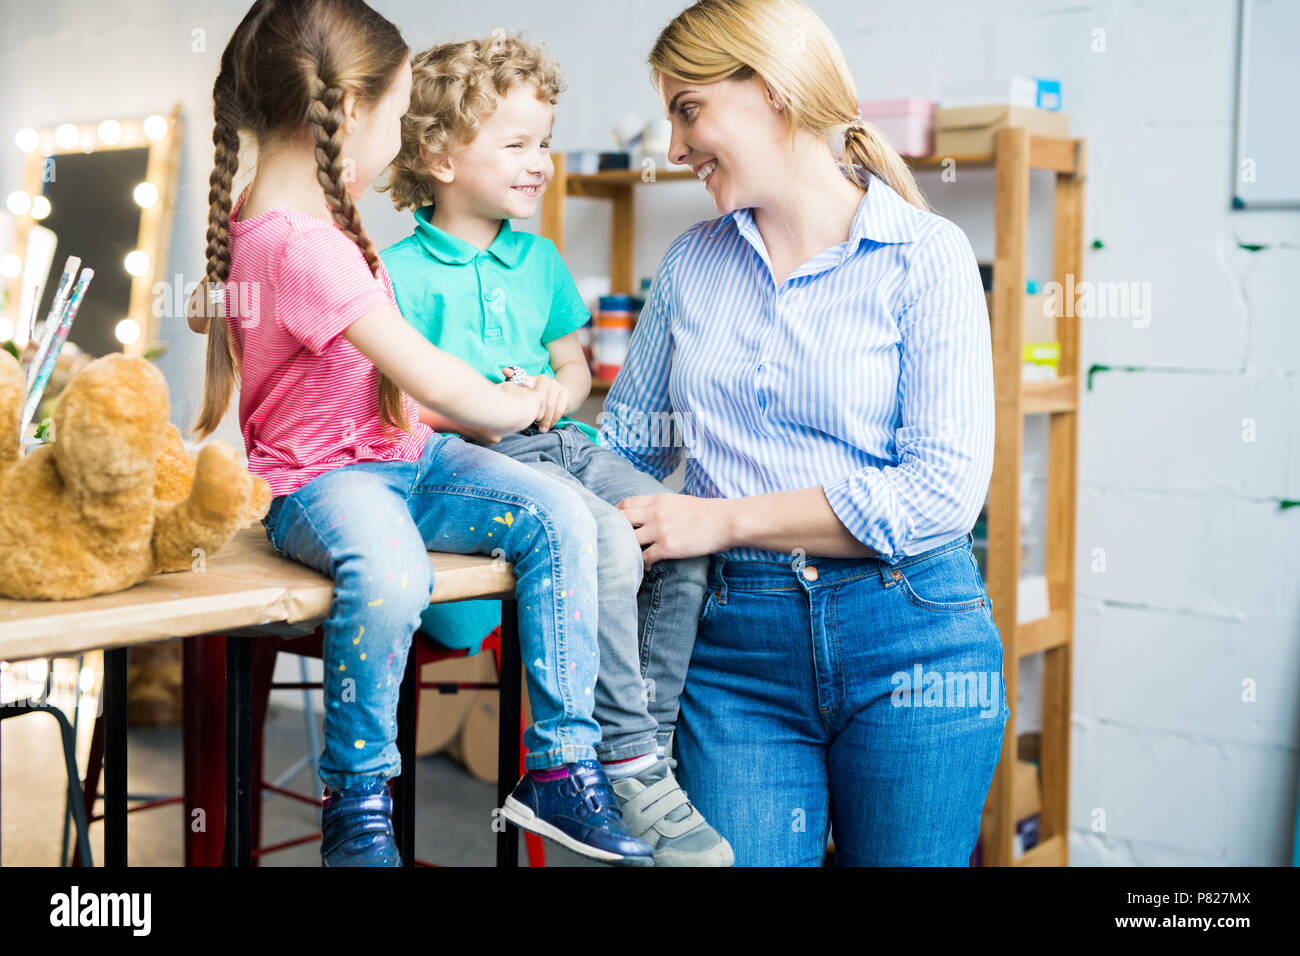 Modern Mom with Two Cute Kids - Stock Image